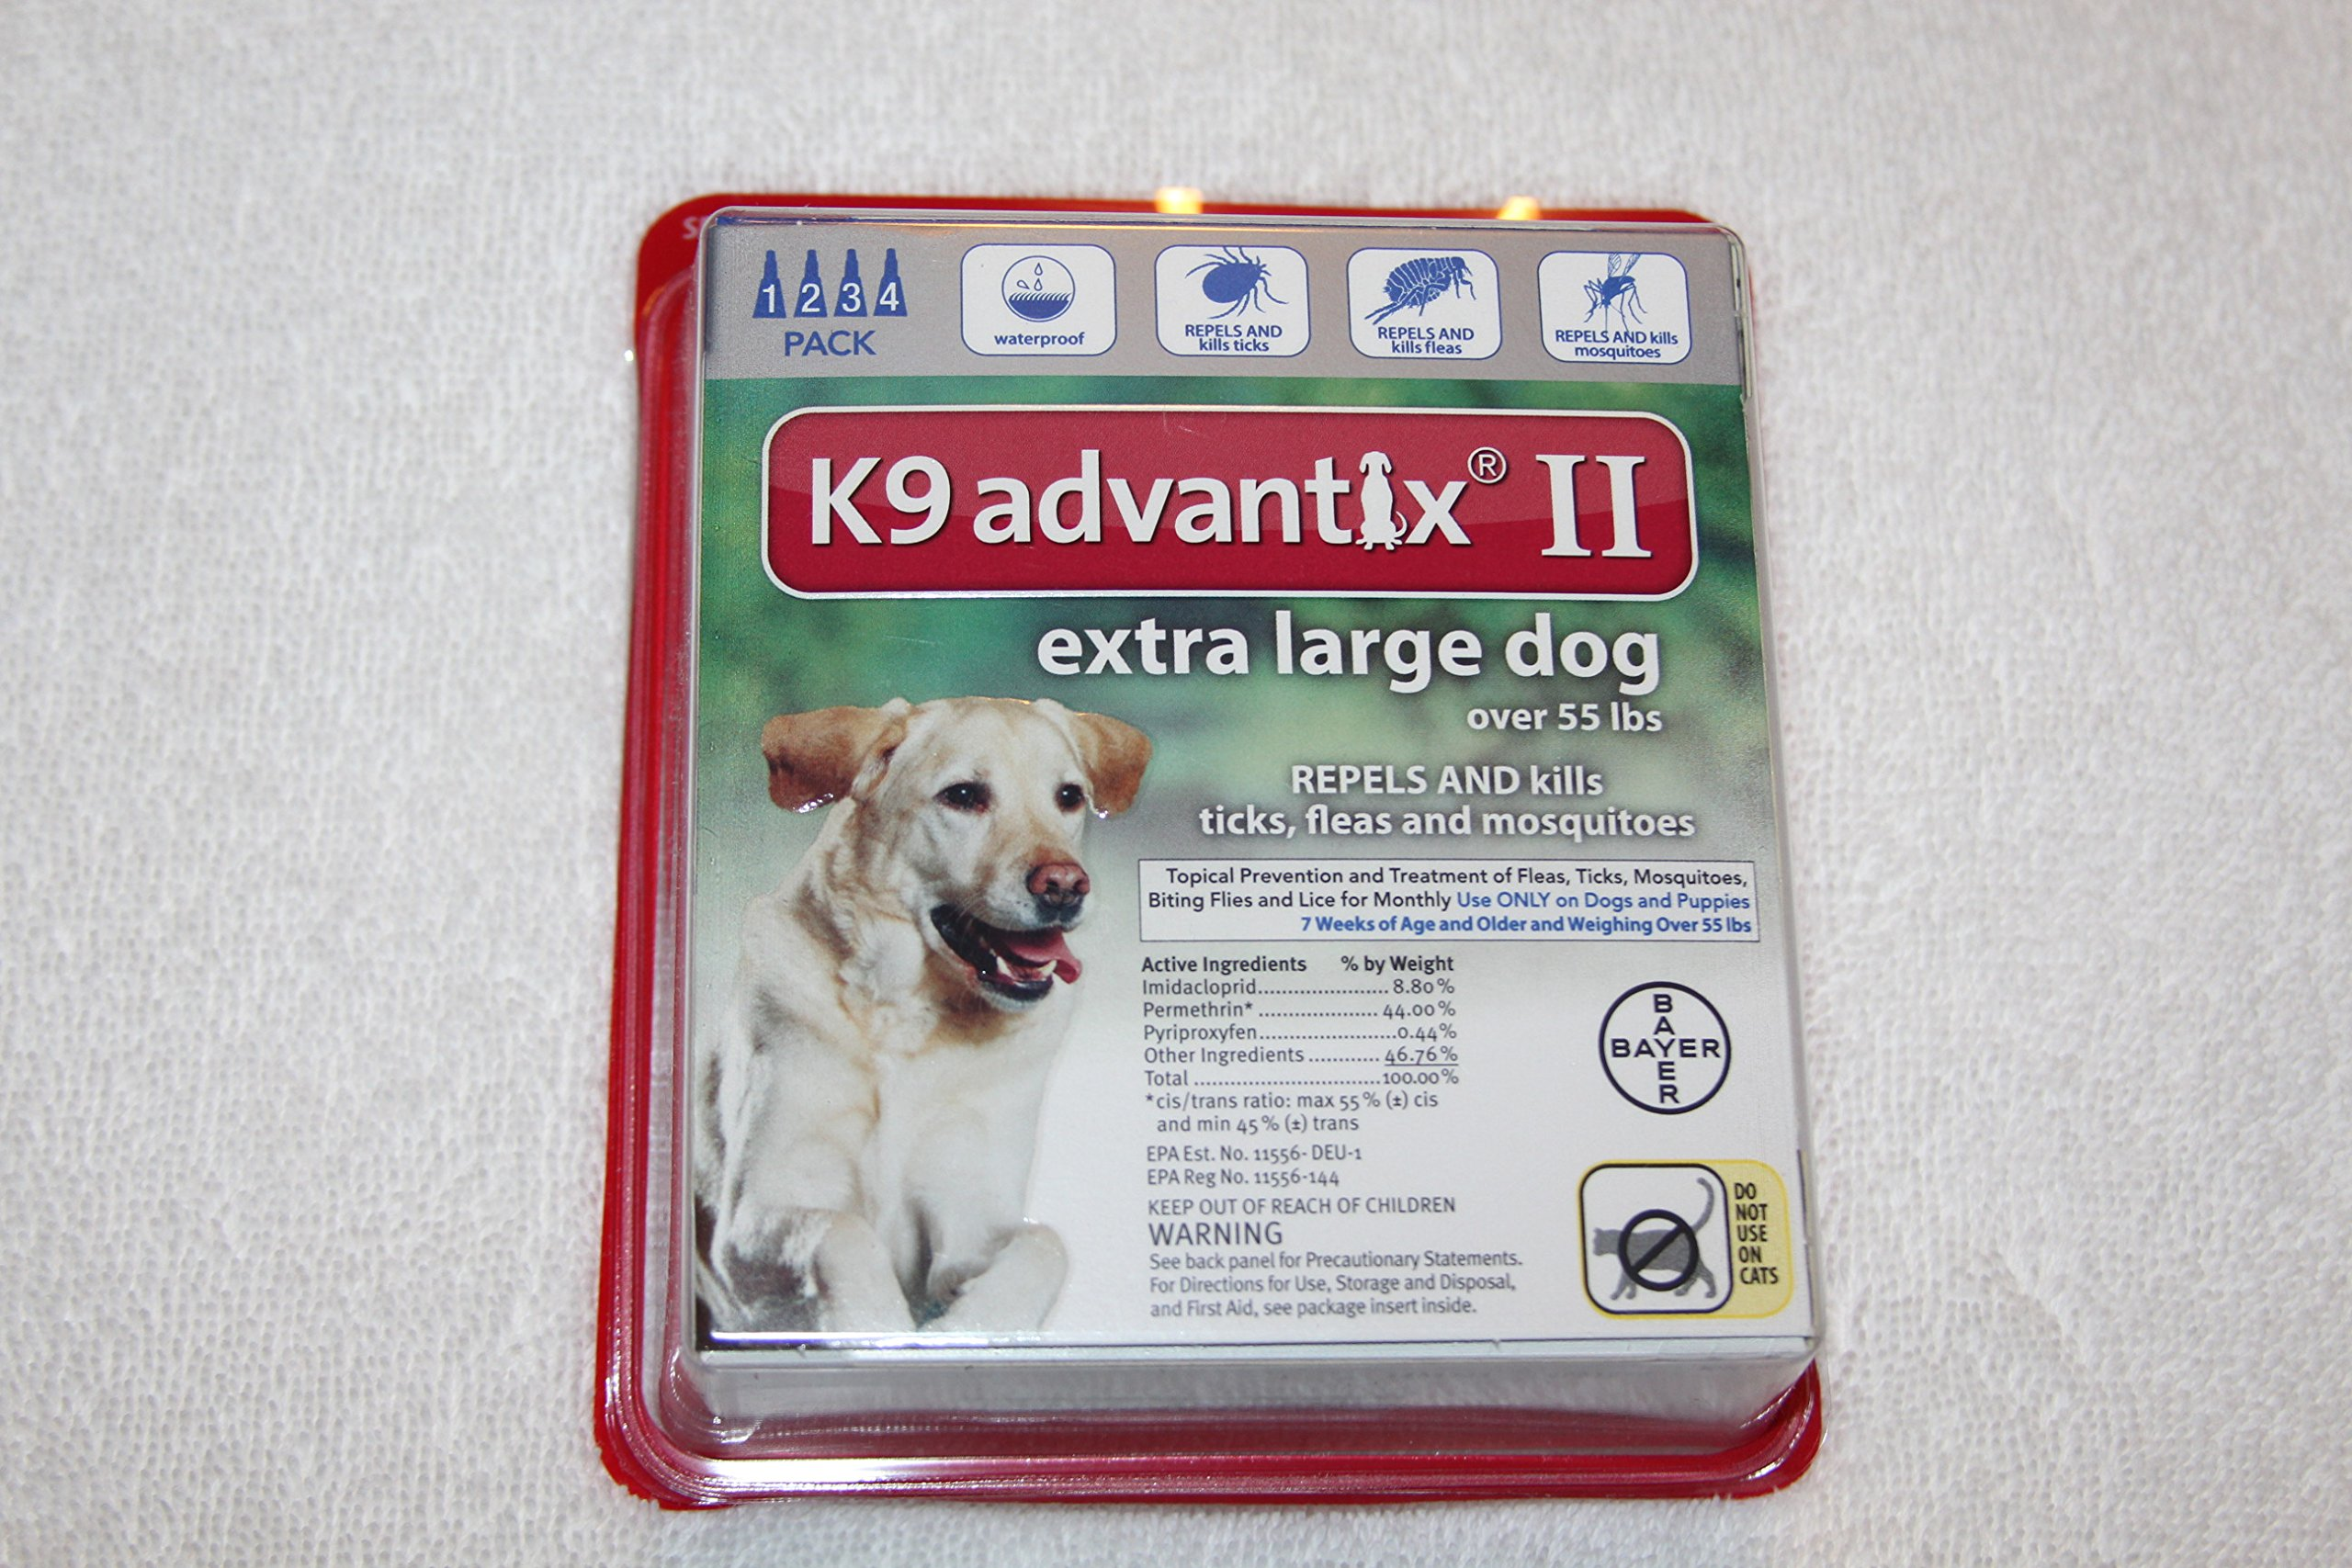 K9 advantix II for extra large dogs over 55 lbs 4 pack